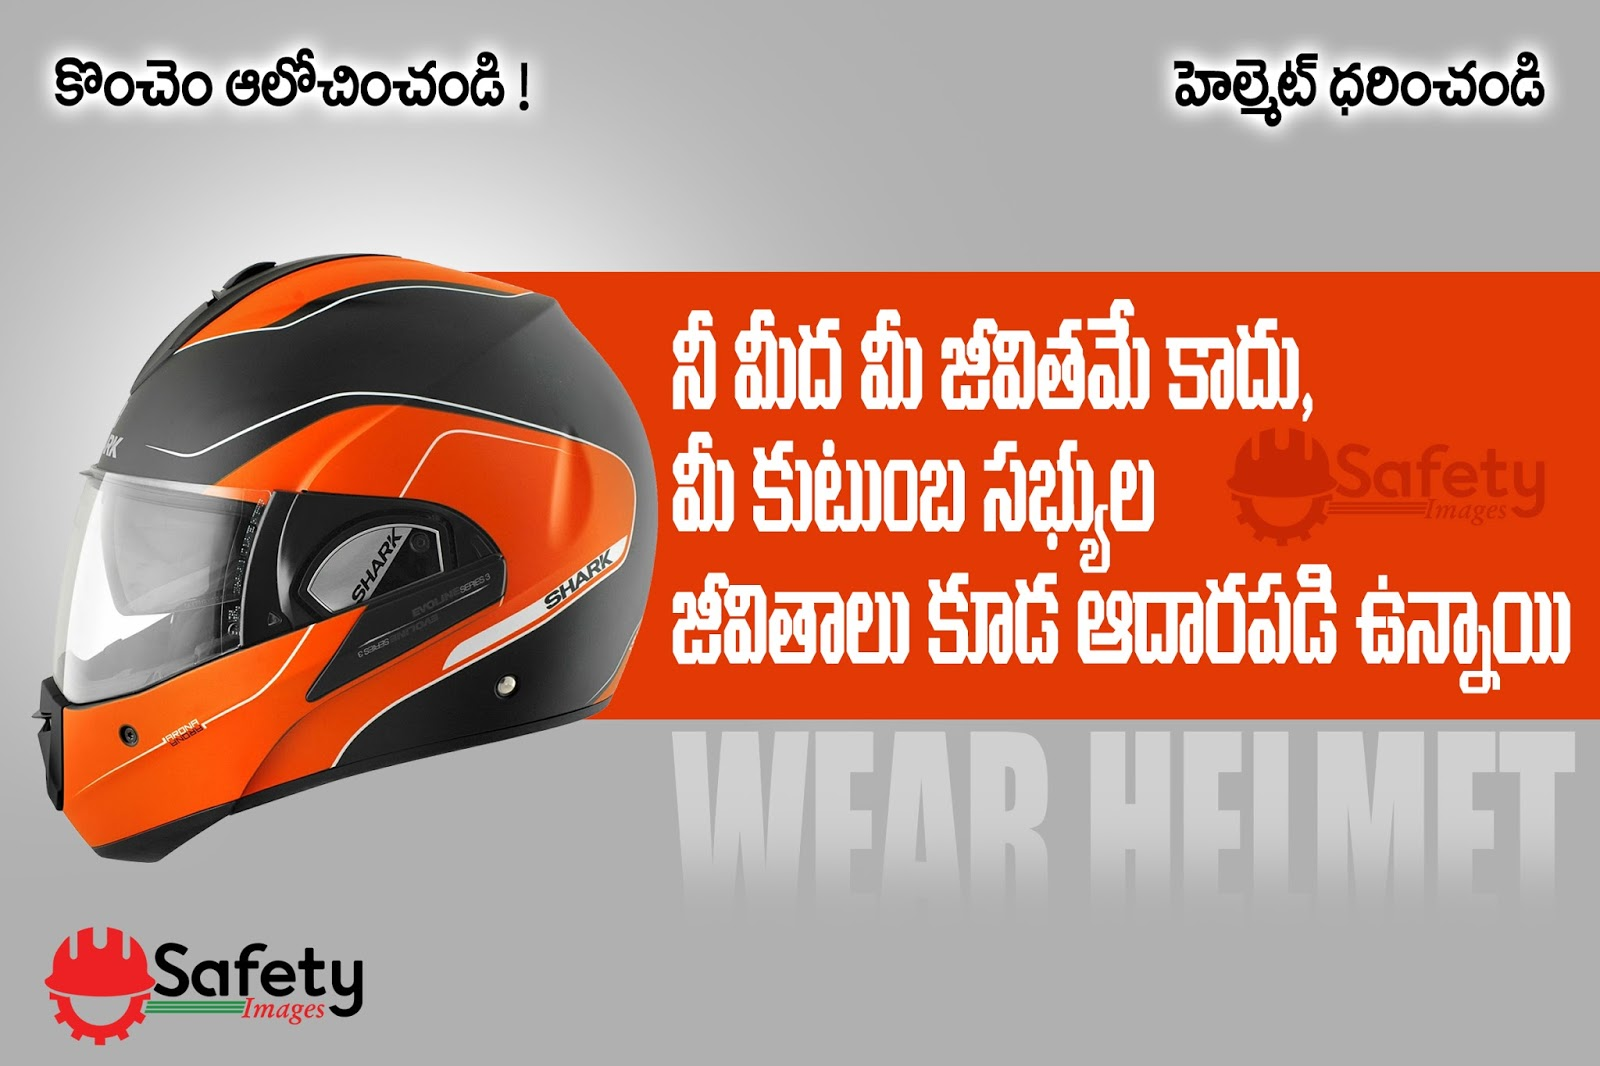 fire safety slogans in telugu new fashions